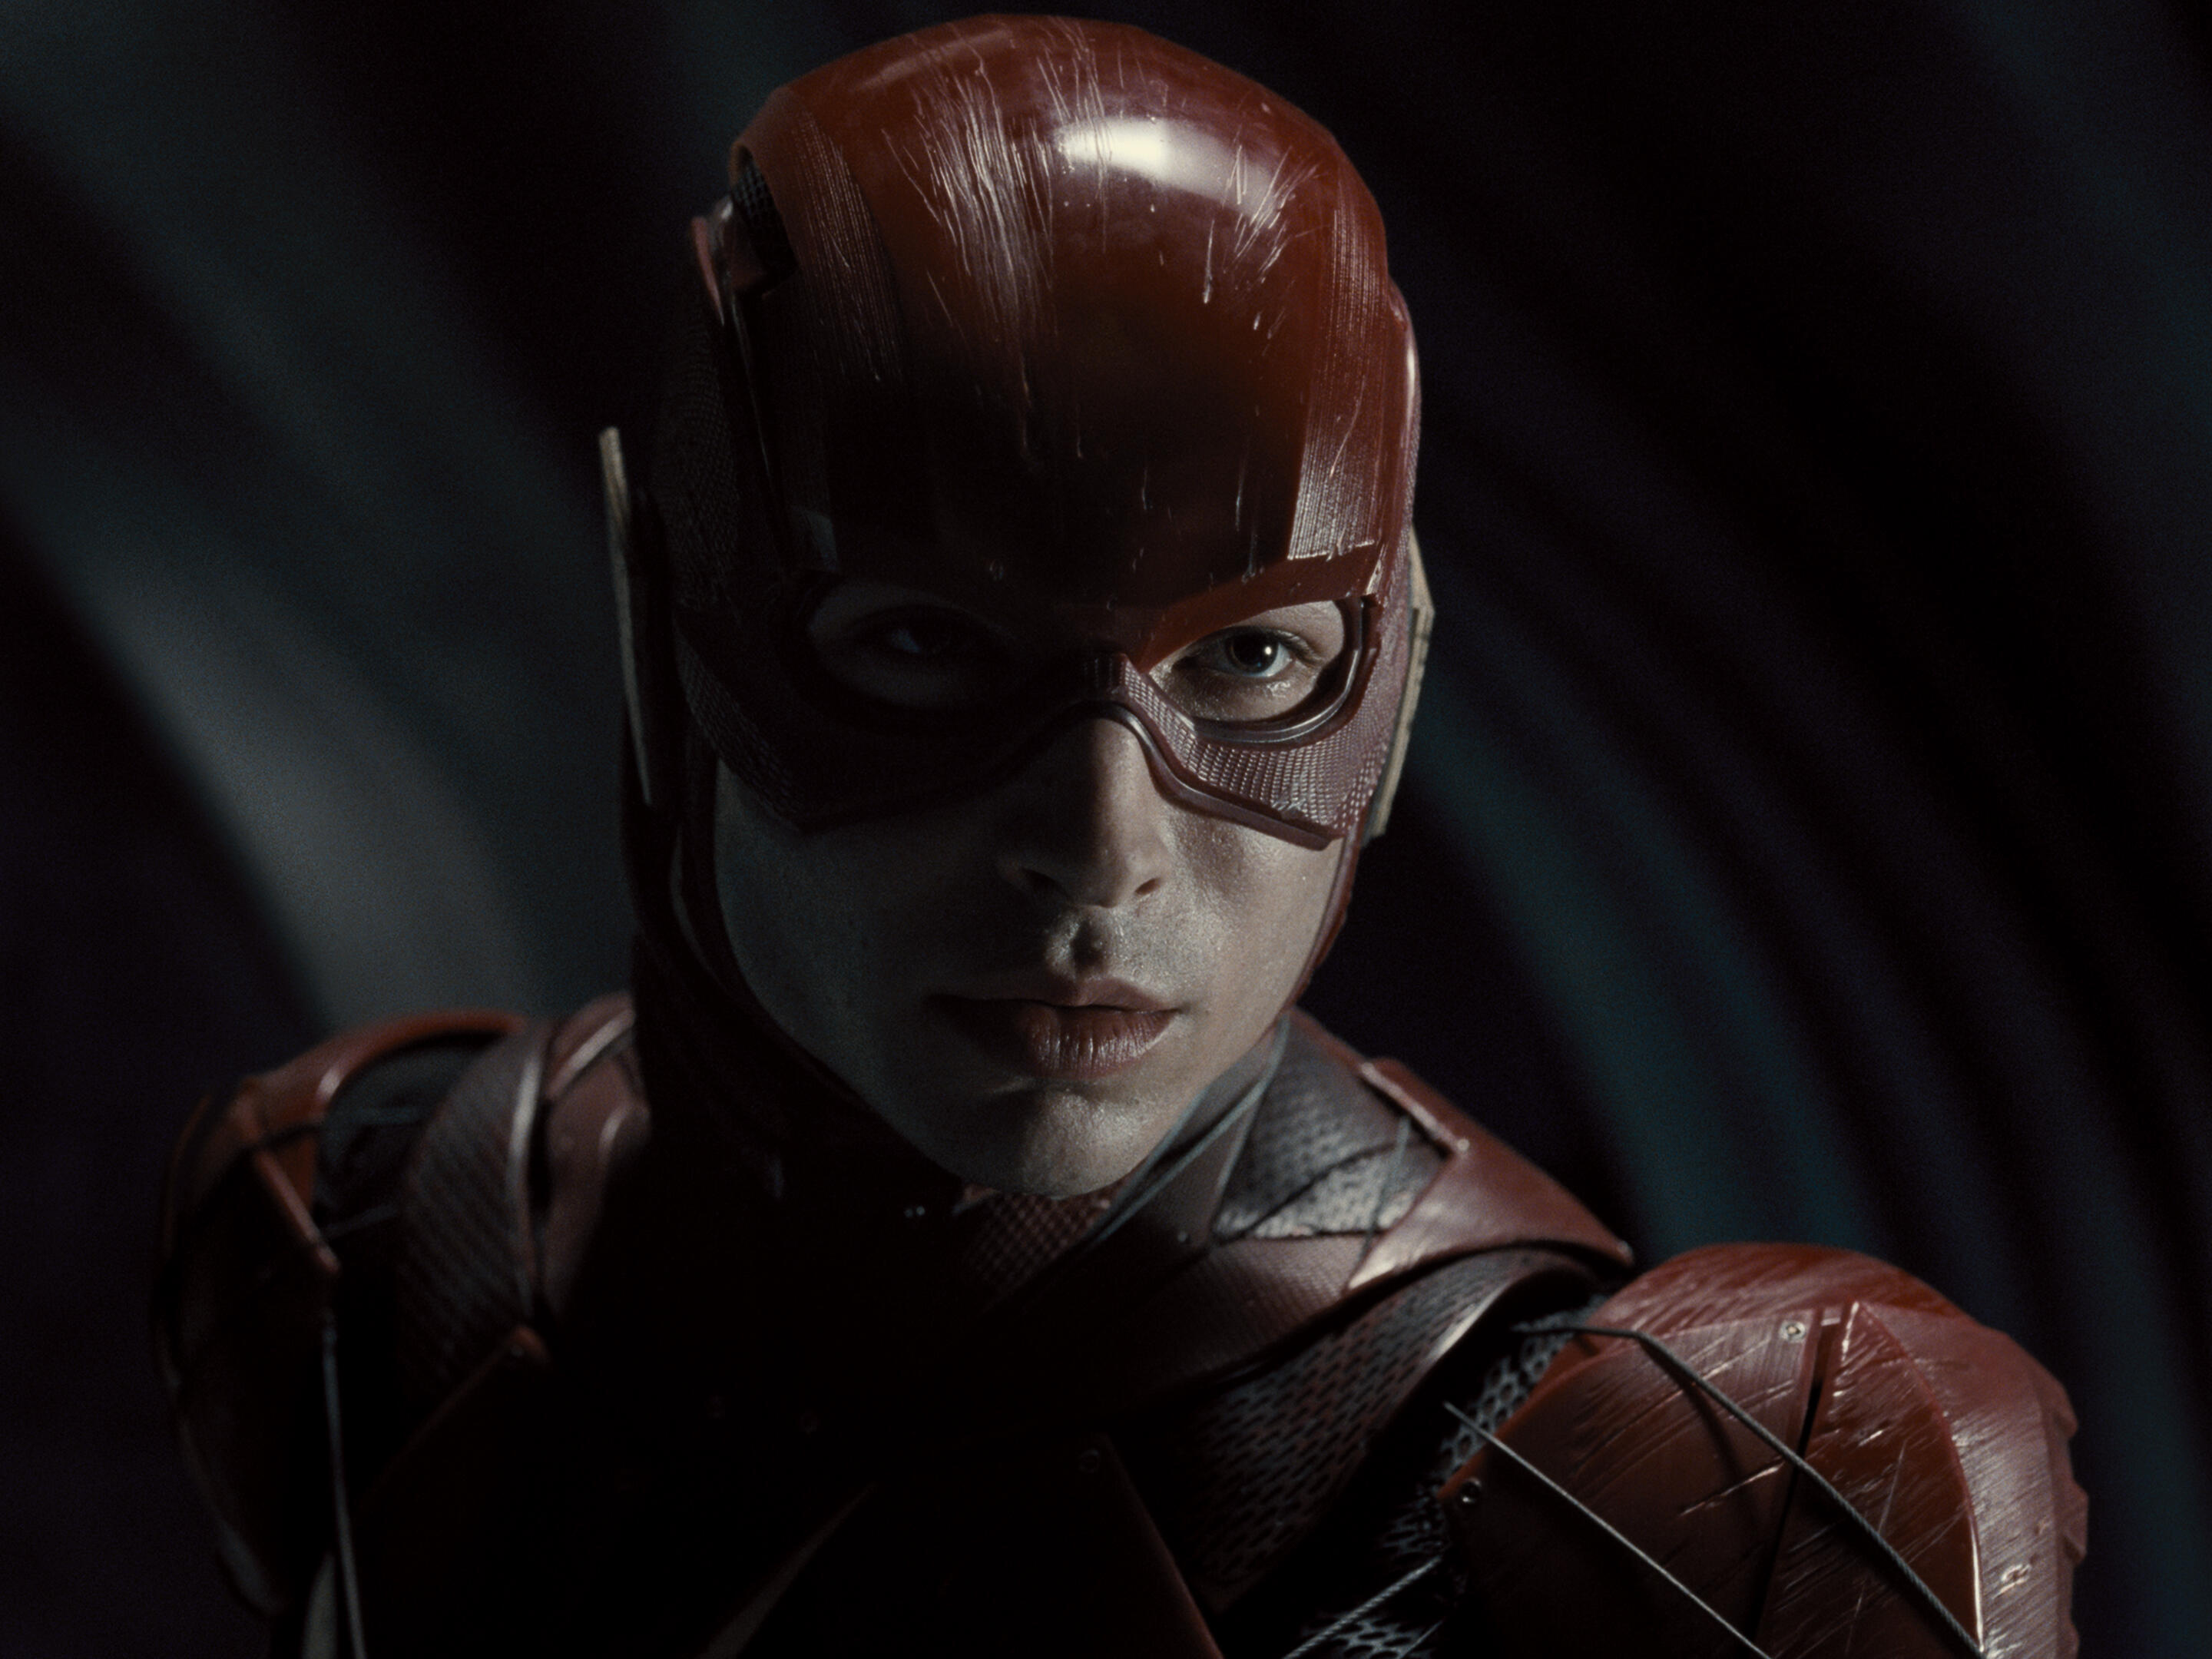 Snyder Cut Ending Explained Justice League Epilogue S Cameos And Dangling Plot Threads Cnet